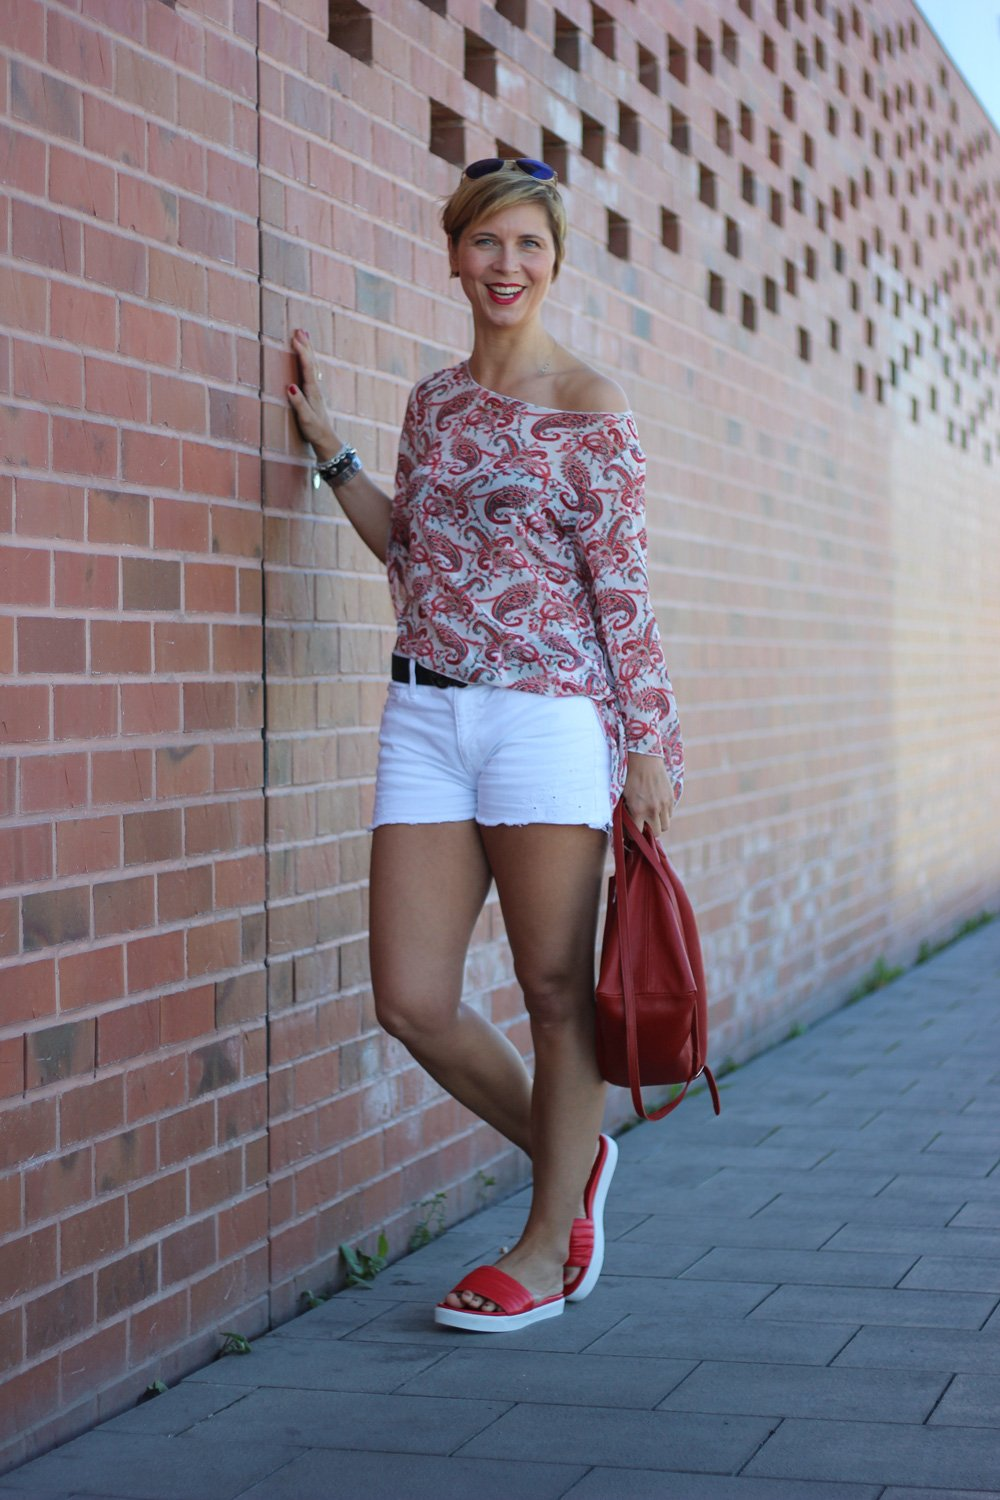 Tunika, Paisley, Conny Doll, Fashionblog, Muenchenblogger, munichblog, fashionblogger, outfitblogger, erinnerungsstuecke, sommer, summer,